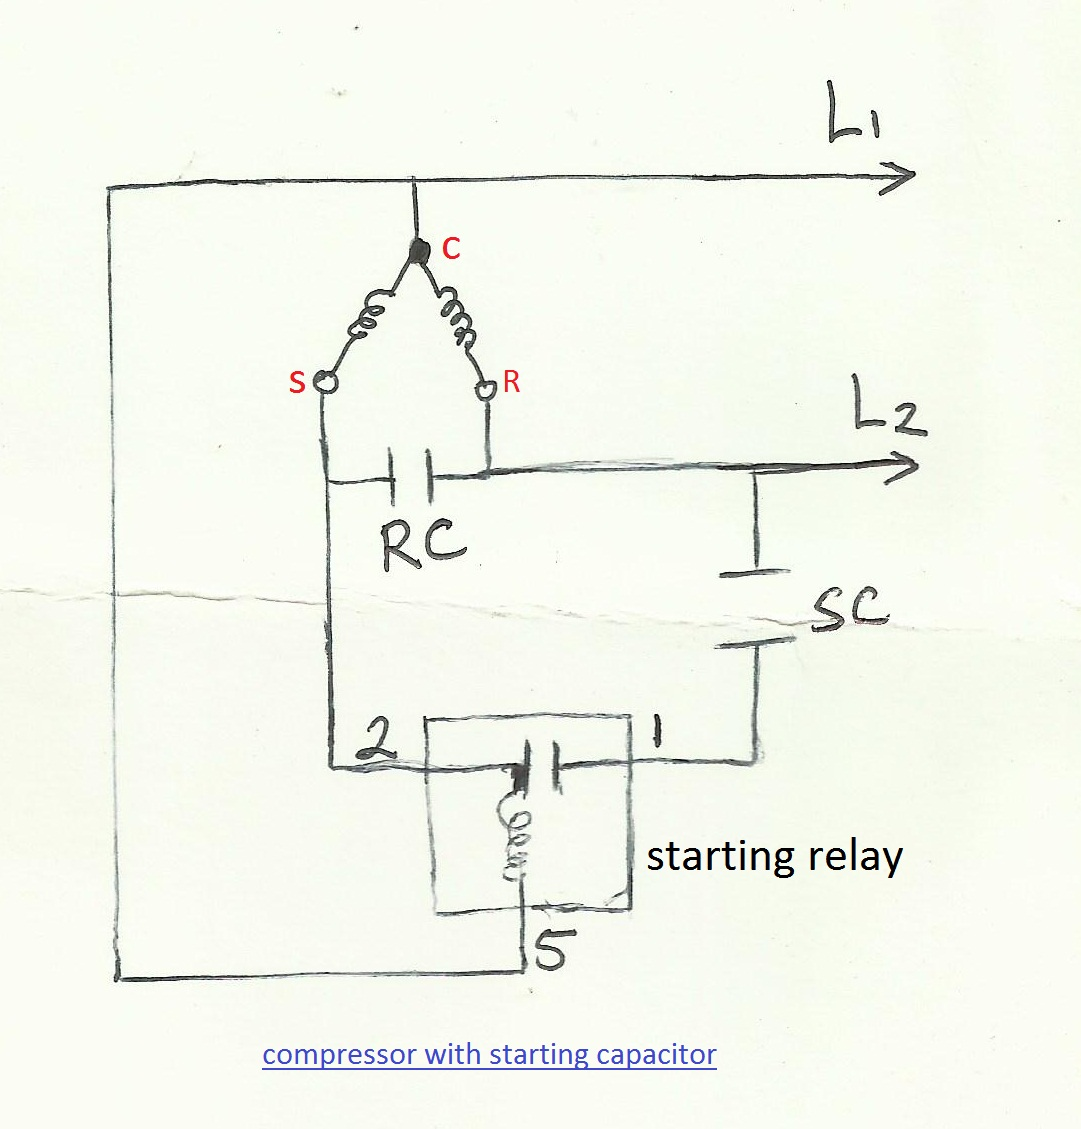 atan refrigeration and air conditioning repair wiring diagram of refrigerator compressor wiring diagram at fashall.co